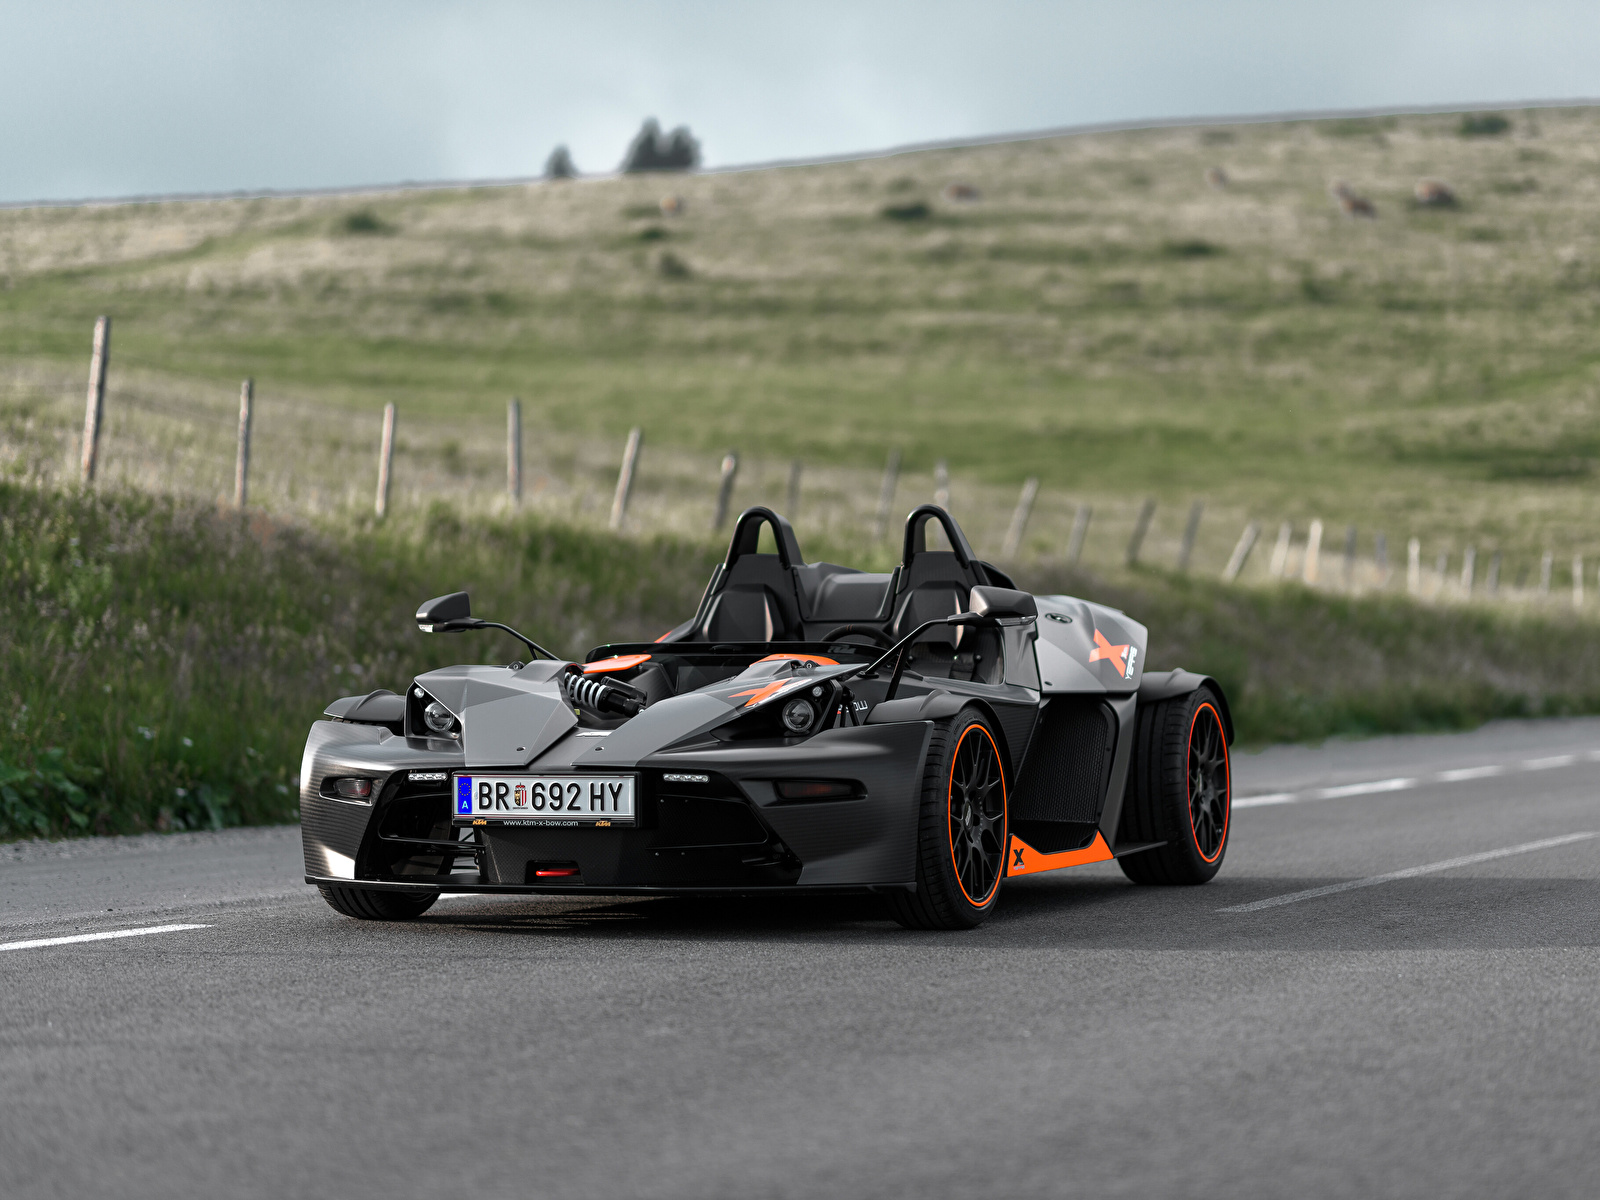 Images KTM Cars 2018-19 X-Bow 10 Years gray Cars 1600x1200 Grey auto automobile